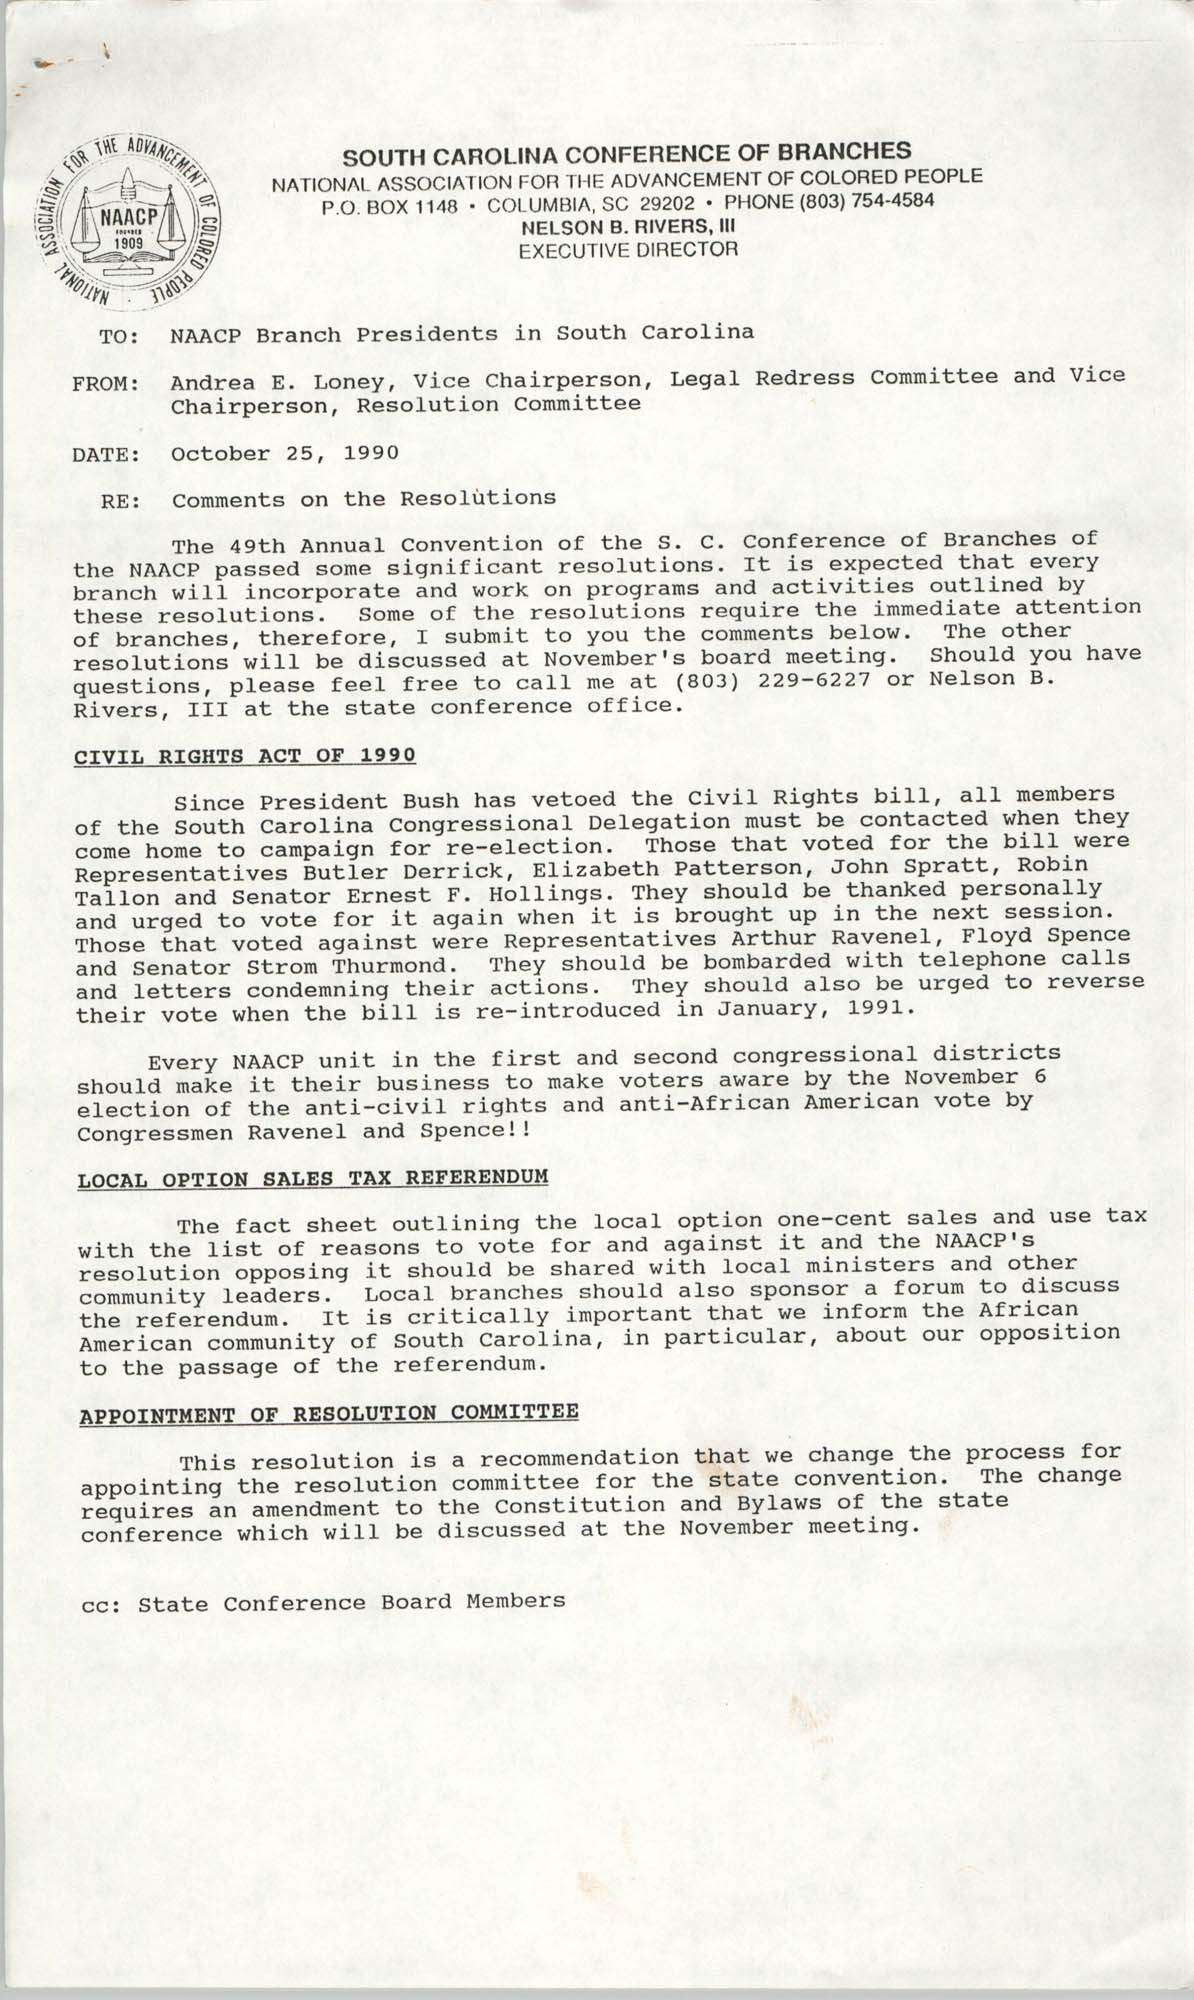 South Carolina Conference of Branches of the NAACP Memorandum, October 25, 1990